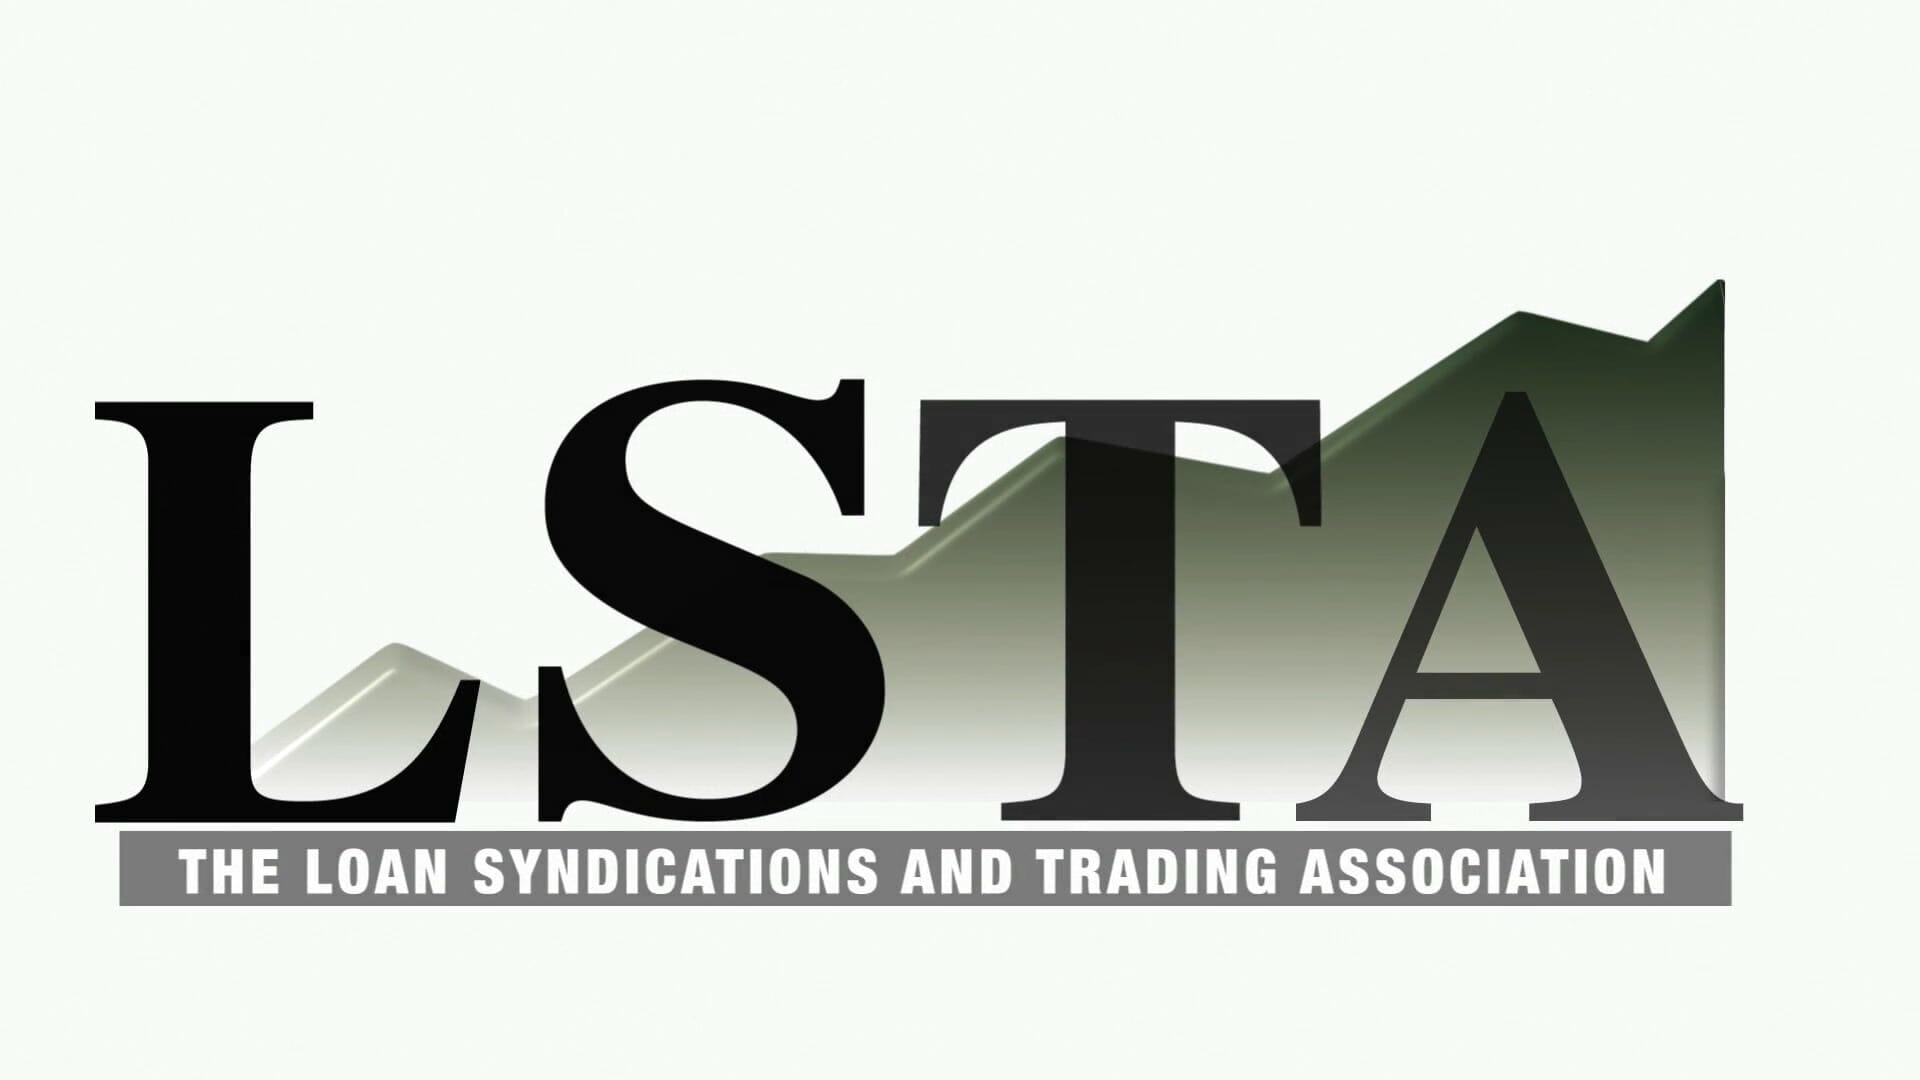 LSTA Releases Second Video on Blockchain and Smart Contracts